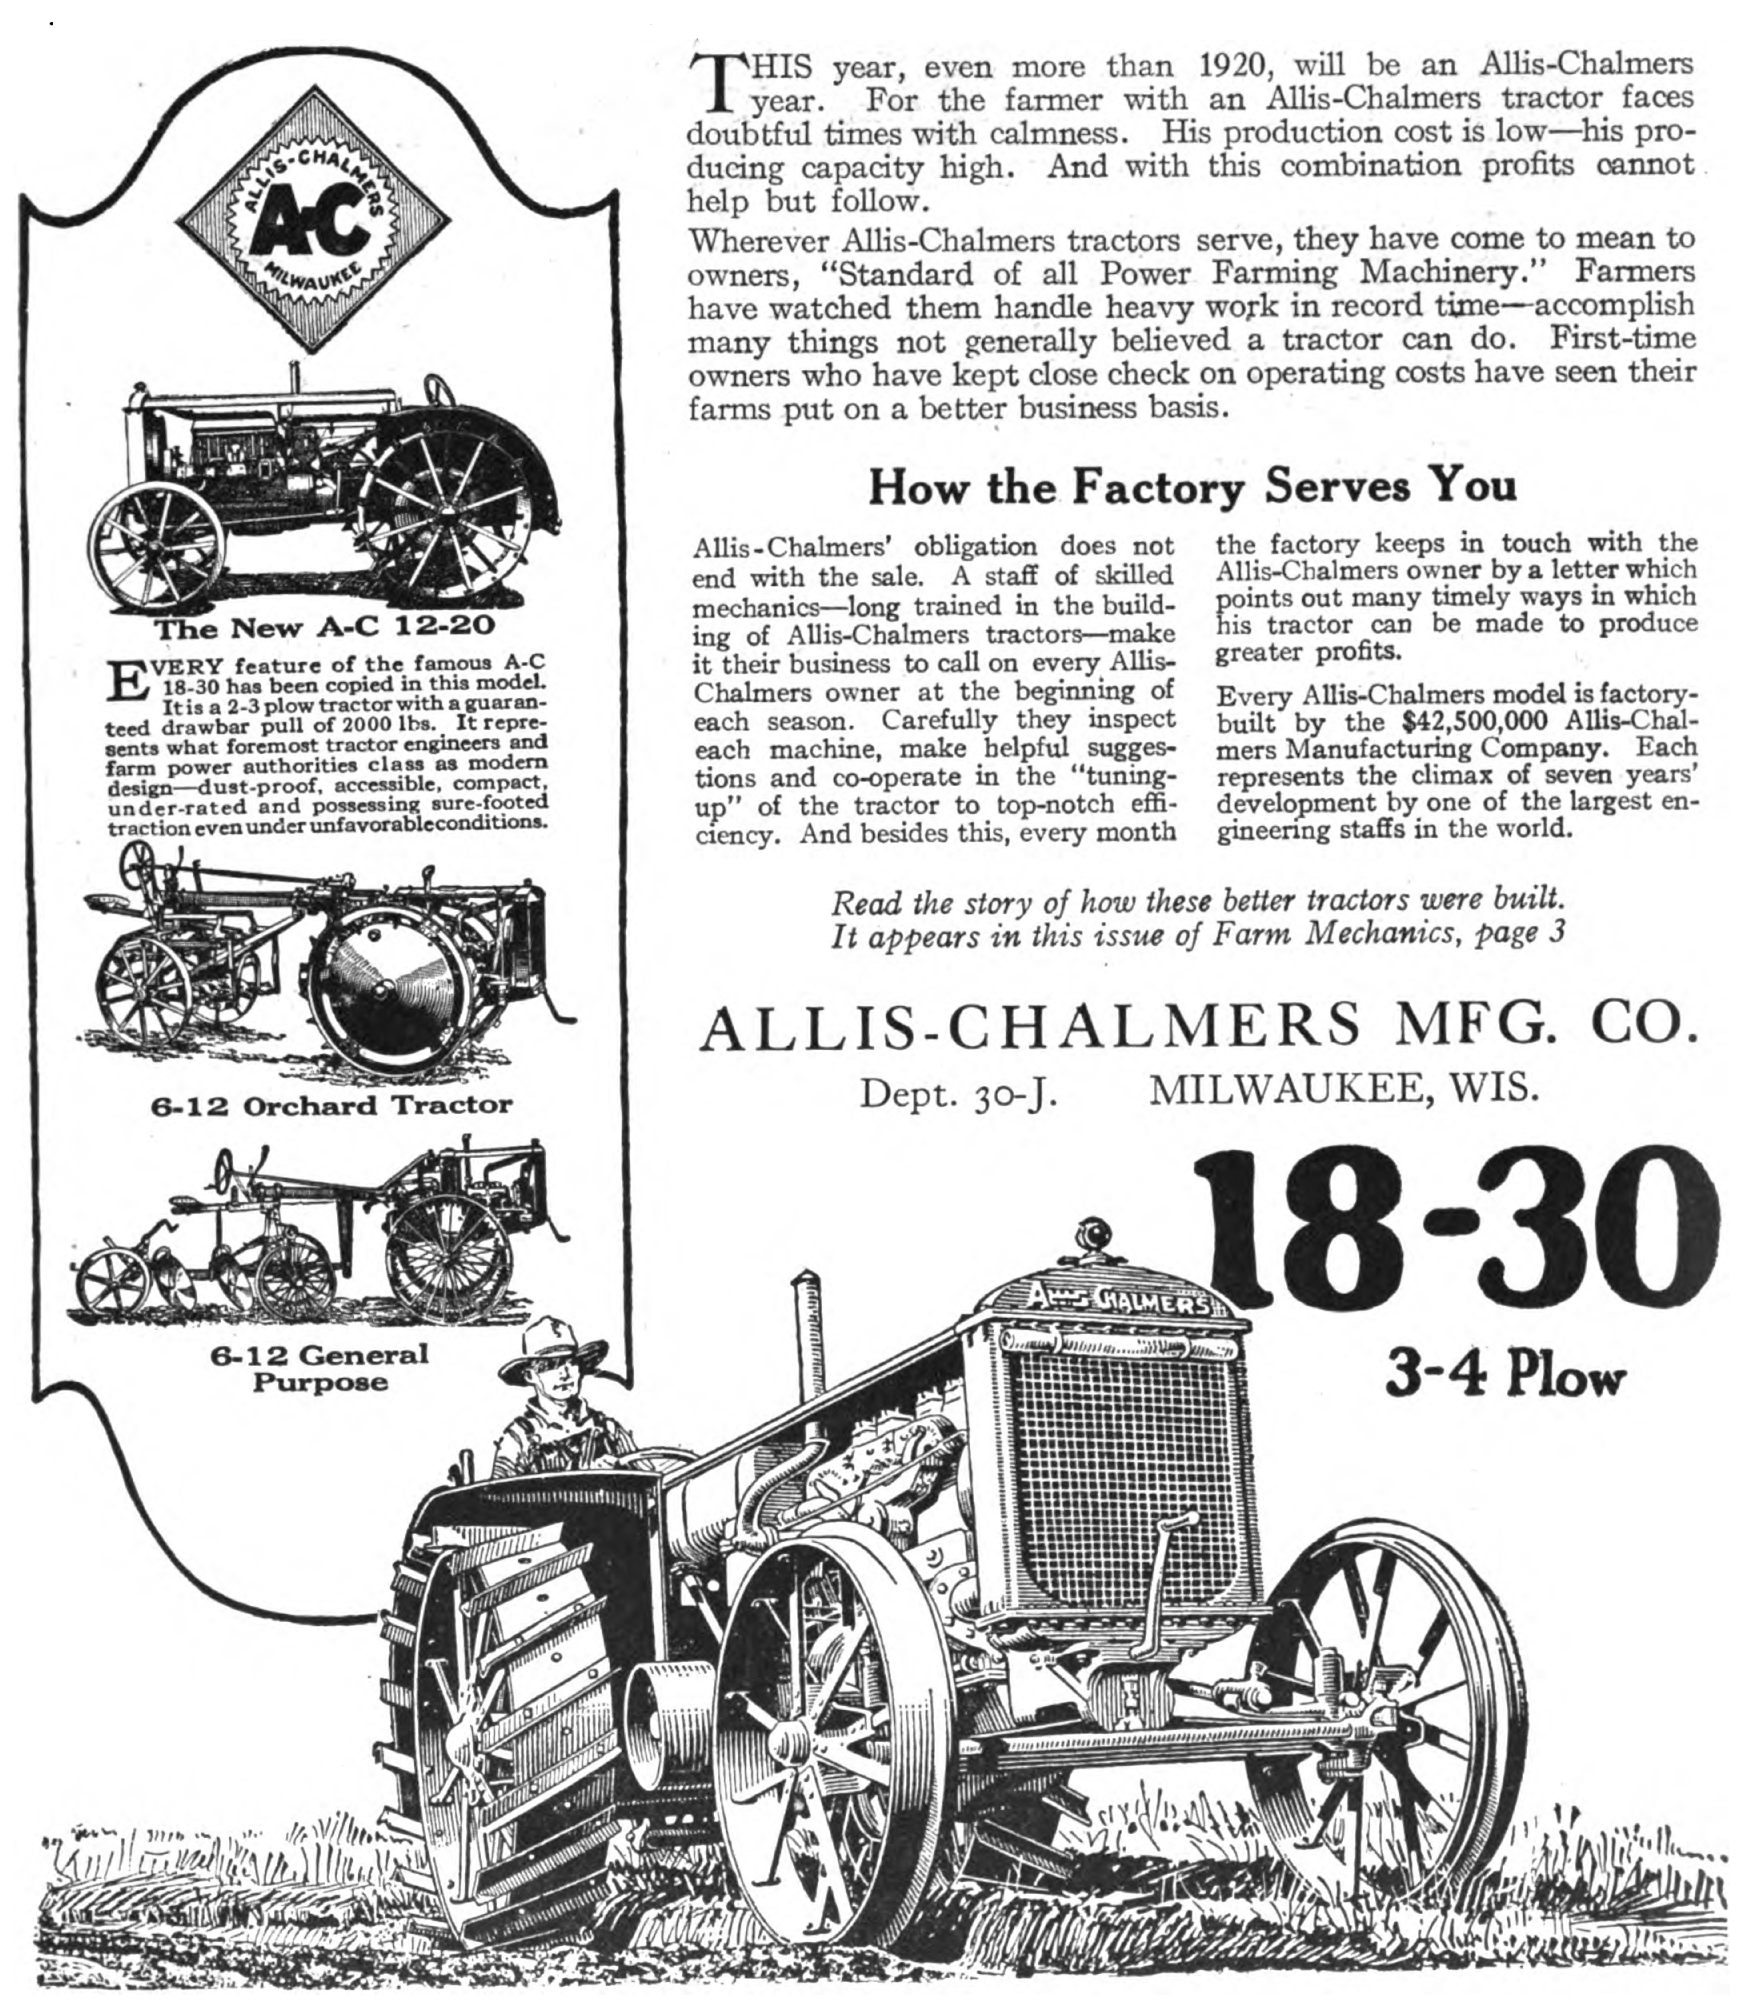 File:Allis-Chalmers tractor advert in Farm Mechanics May 1921 v5 n1 ...